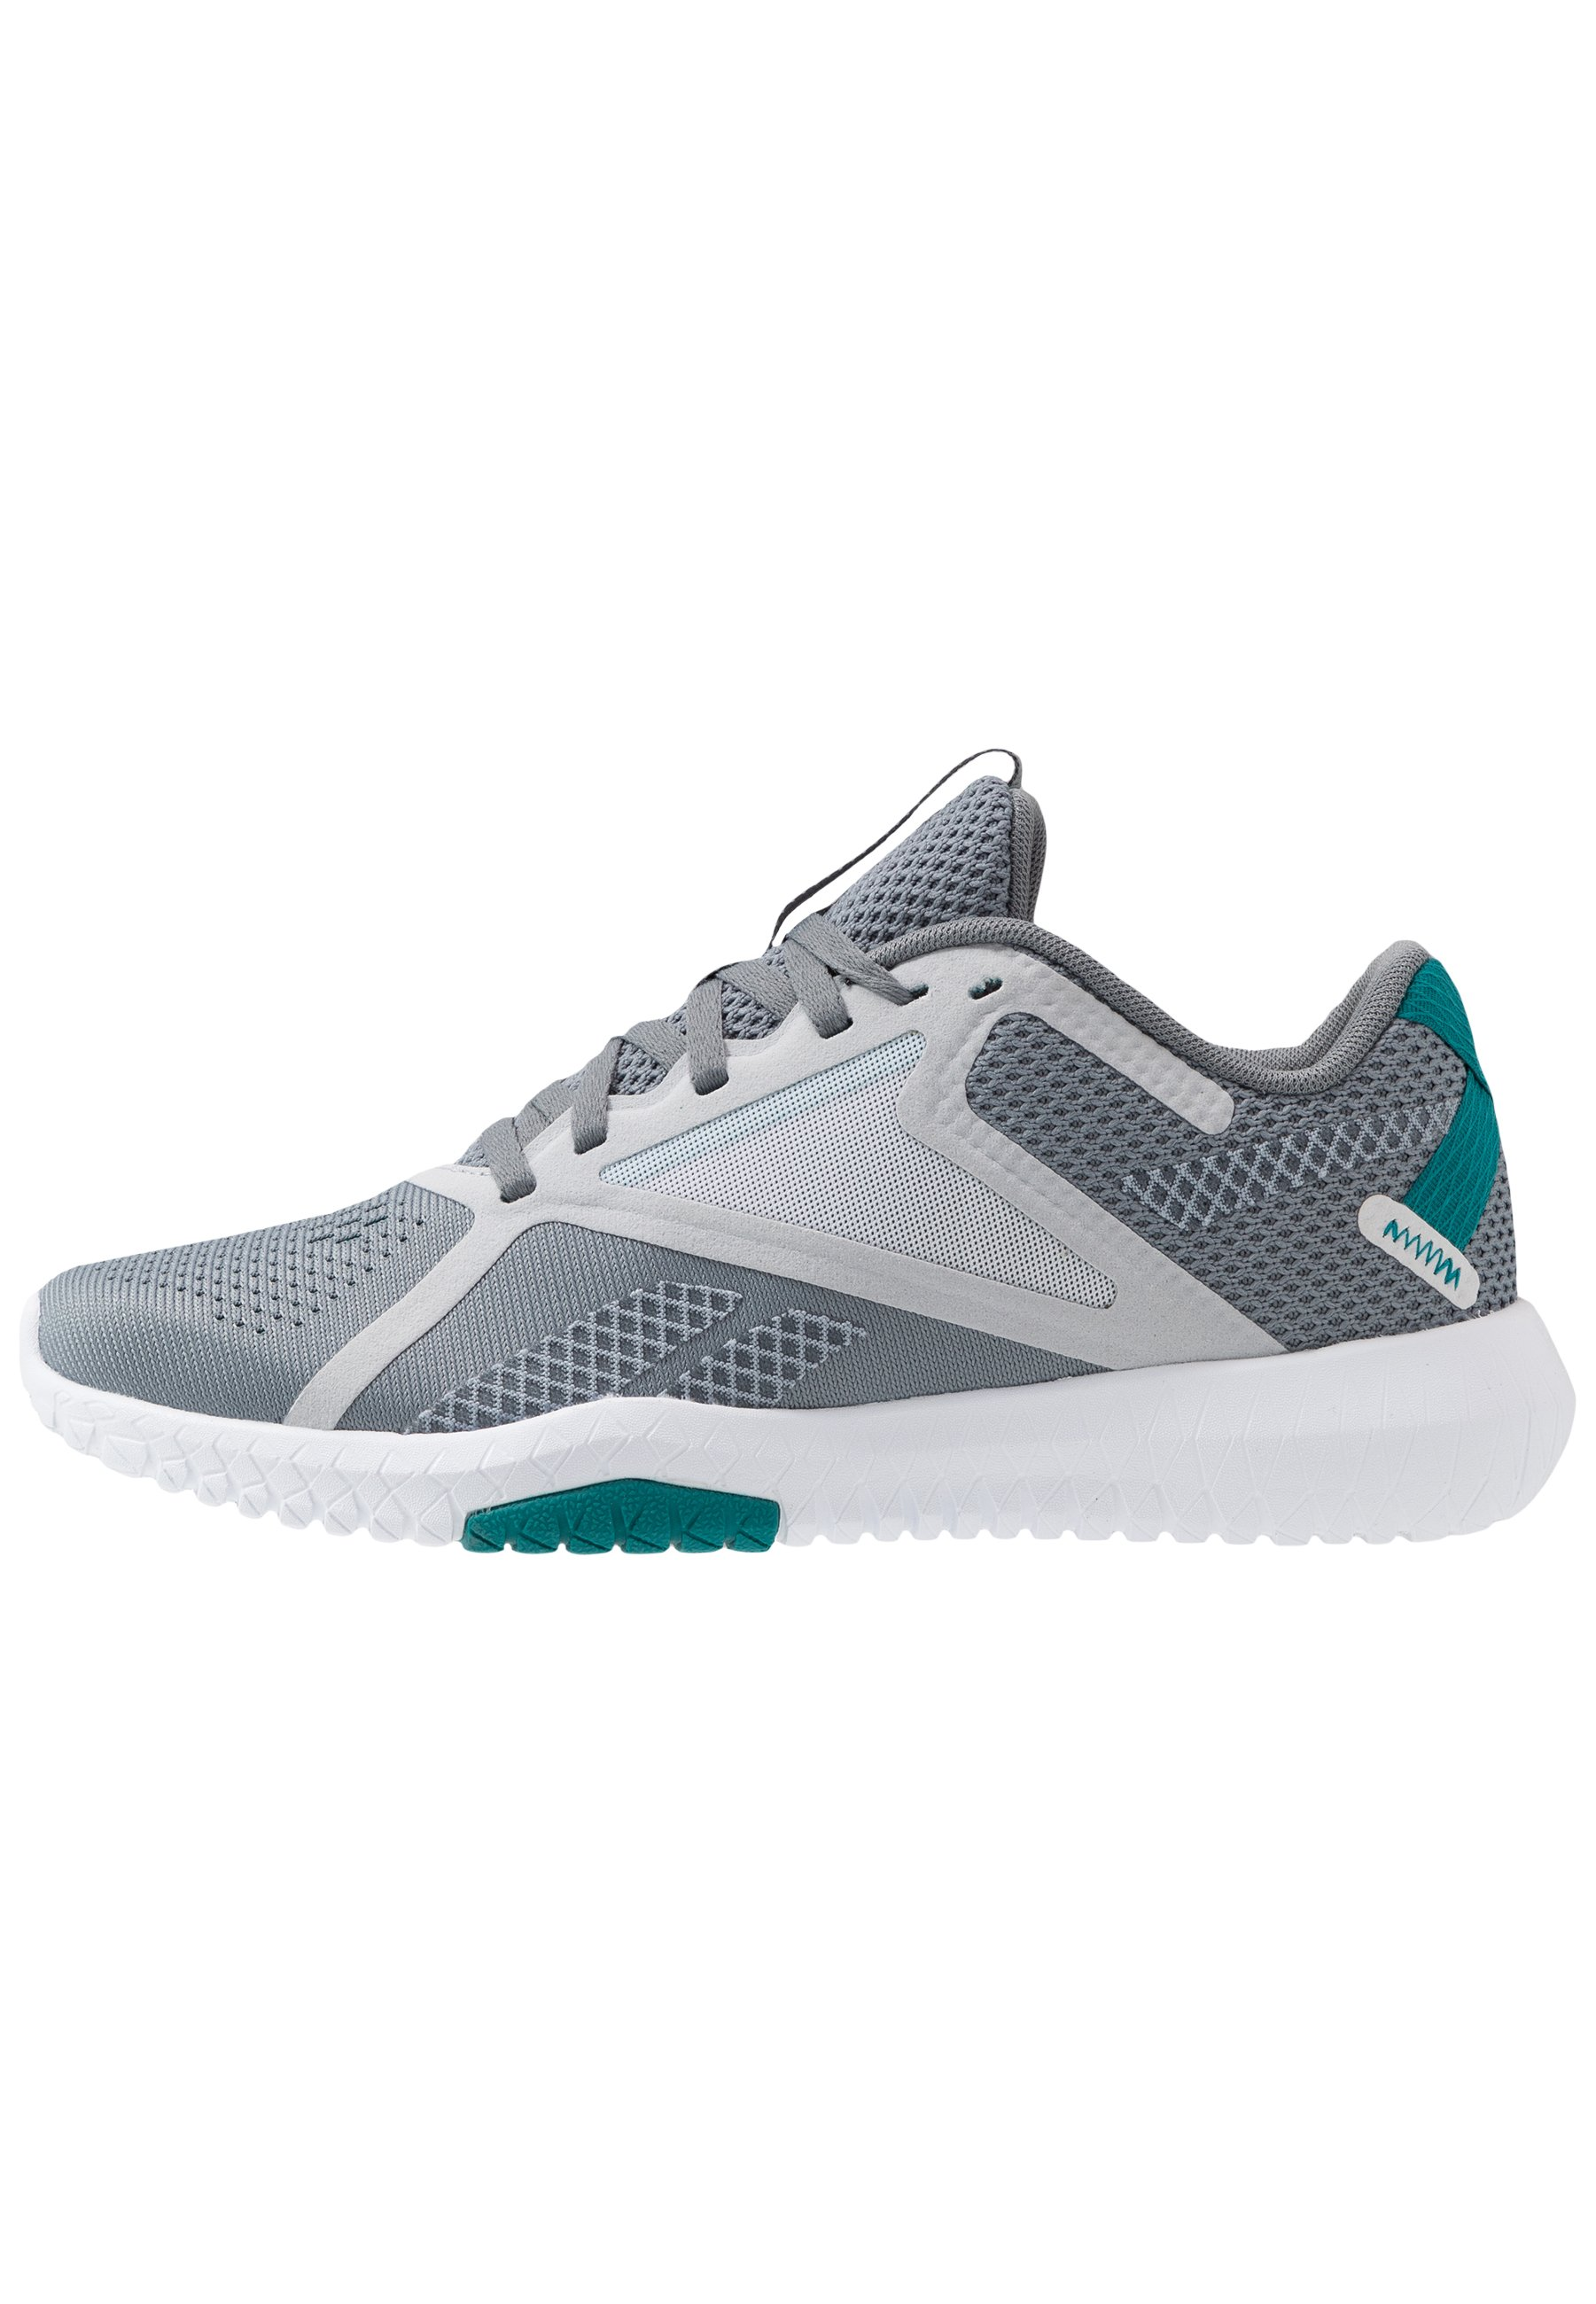 Reebok Flexagon Force 2.0 - Gym- & Träningskor Cold Grey/sea Teal